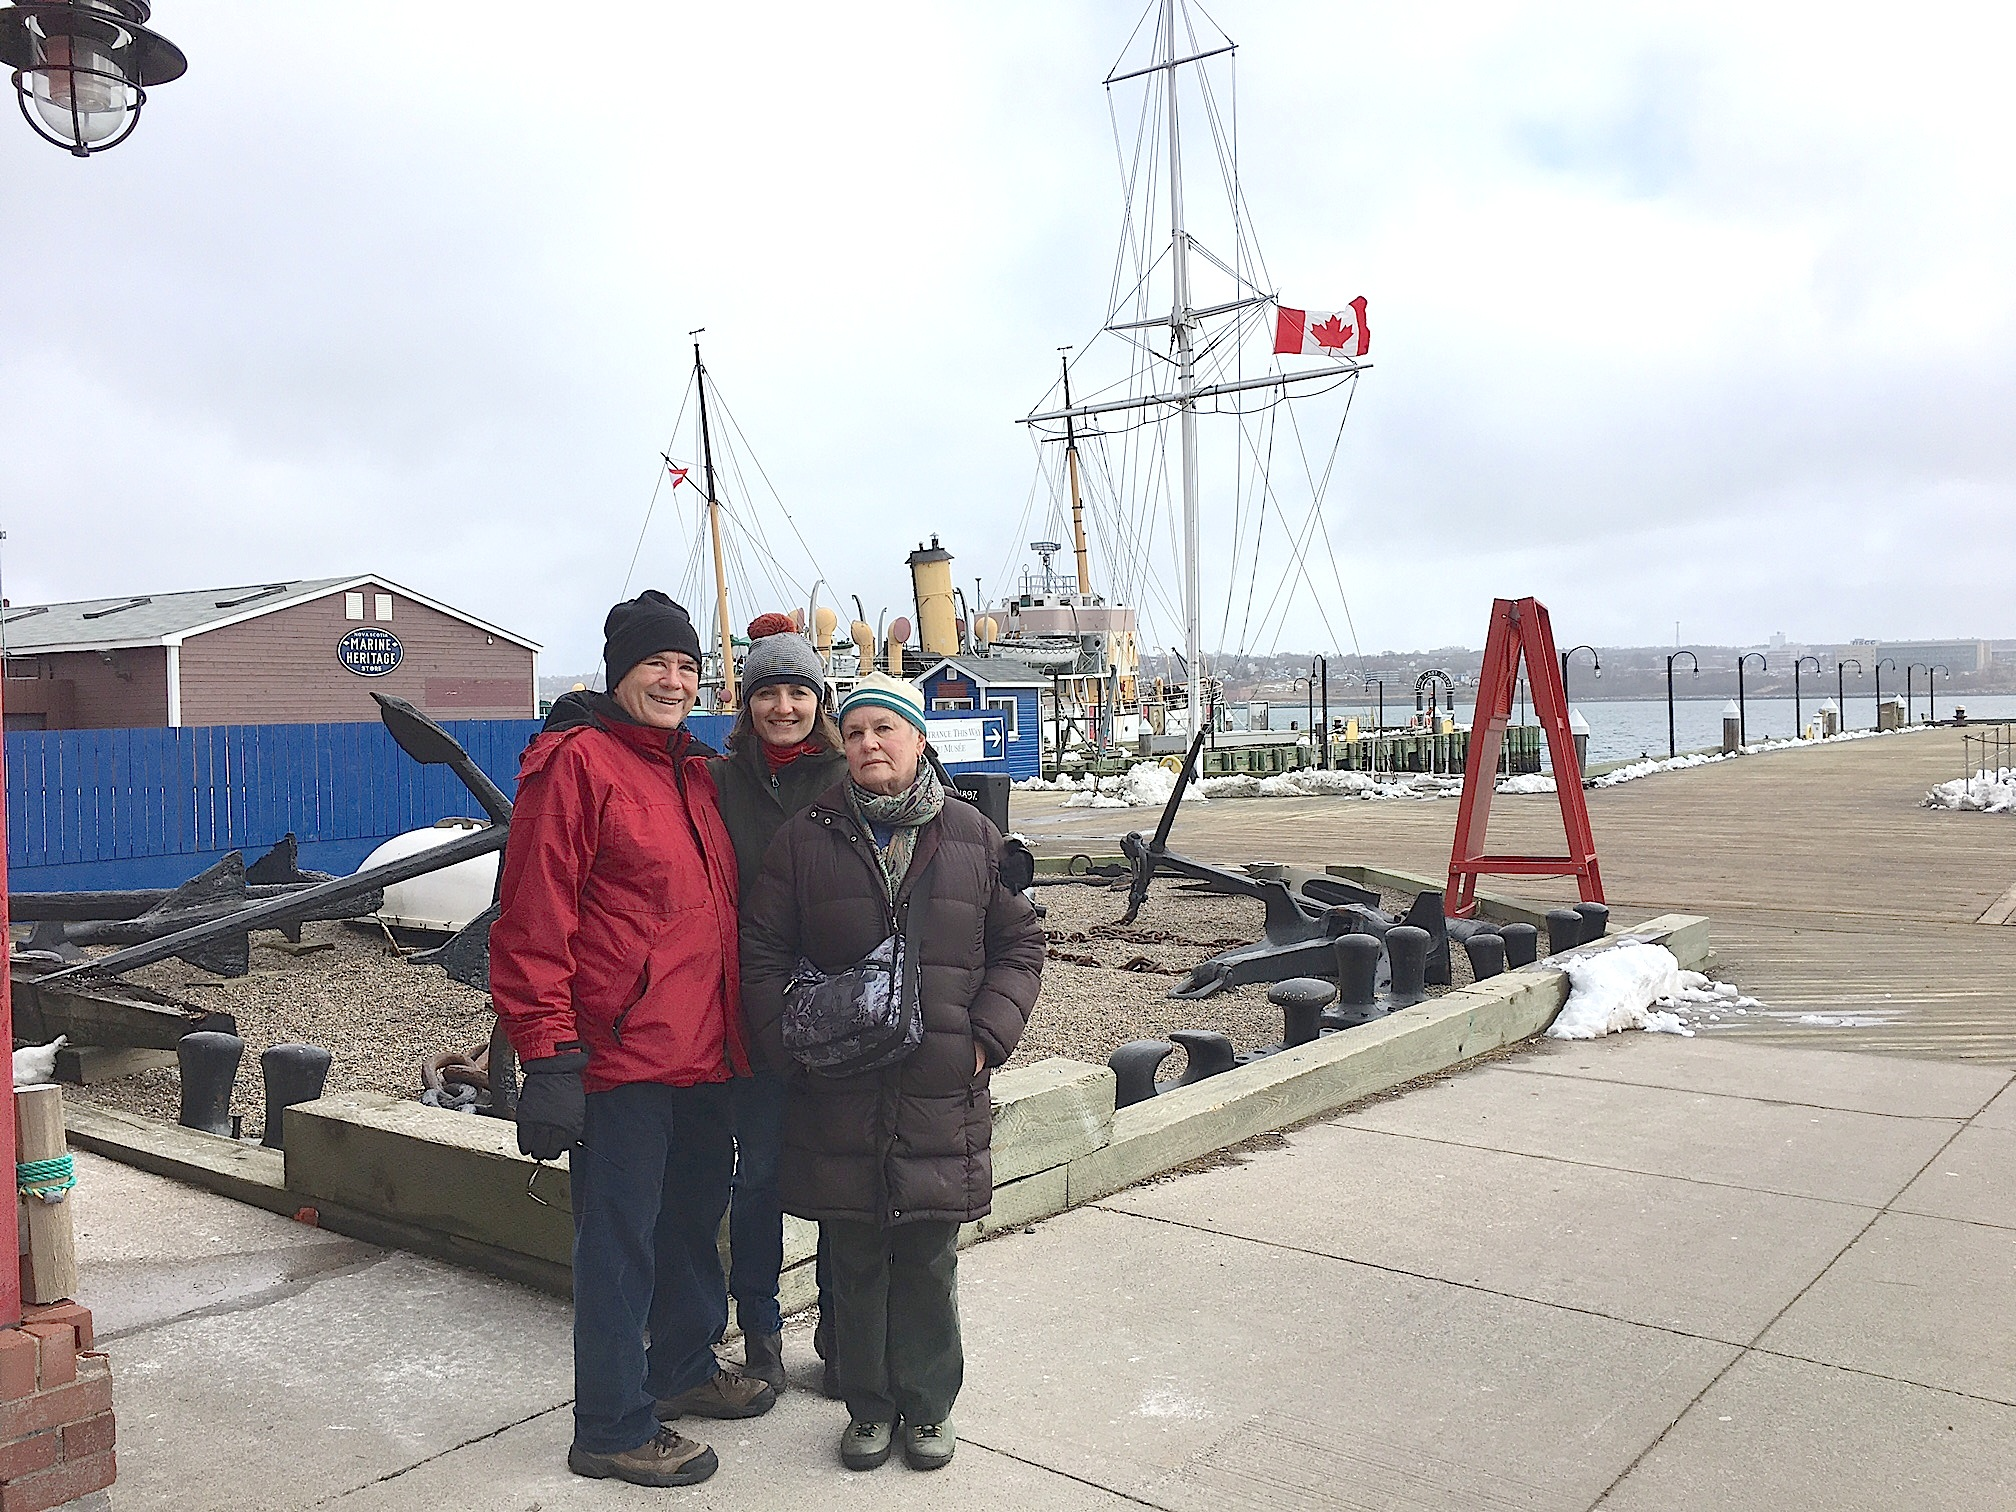 John, Wendy, & Susan on the Halifax waterfront